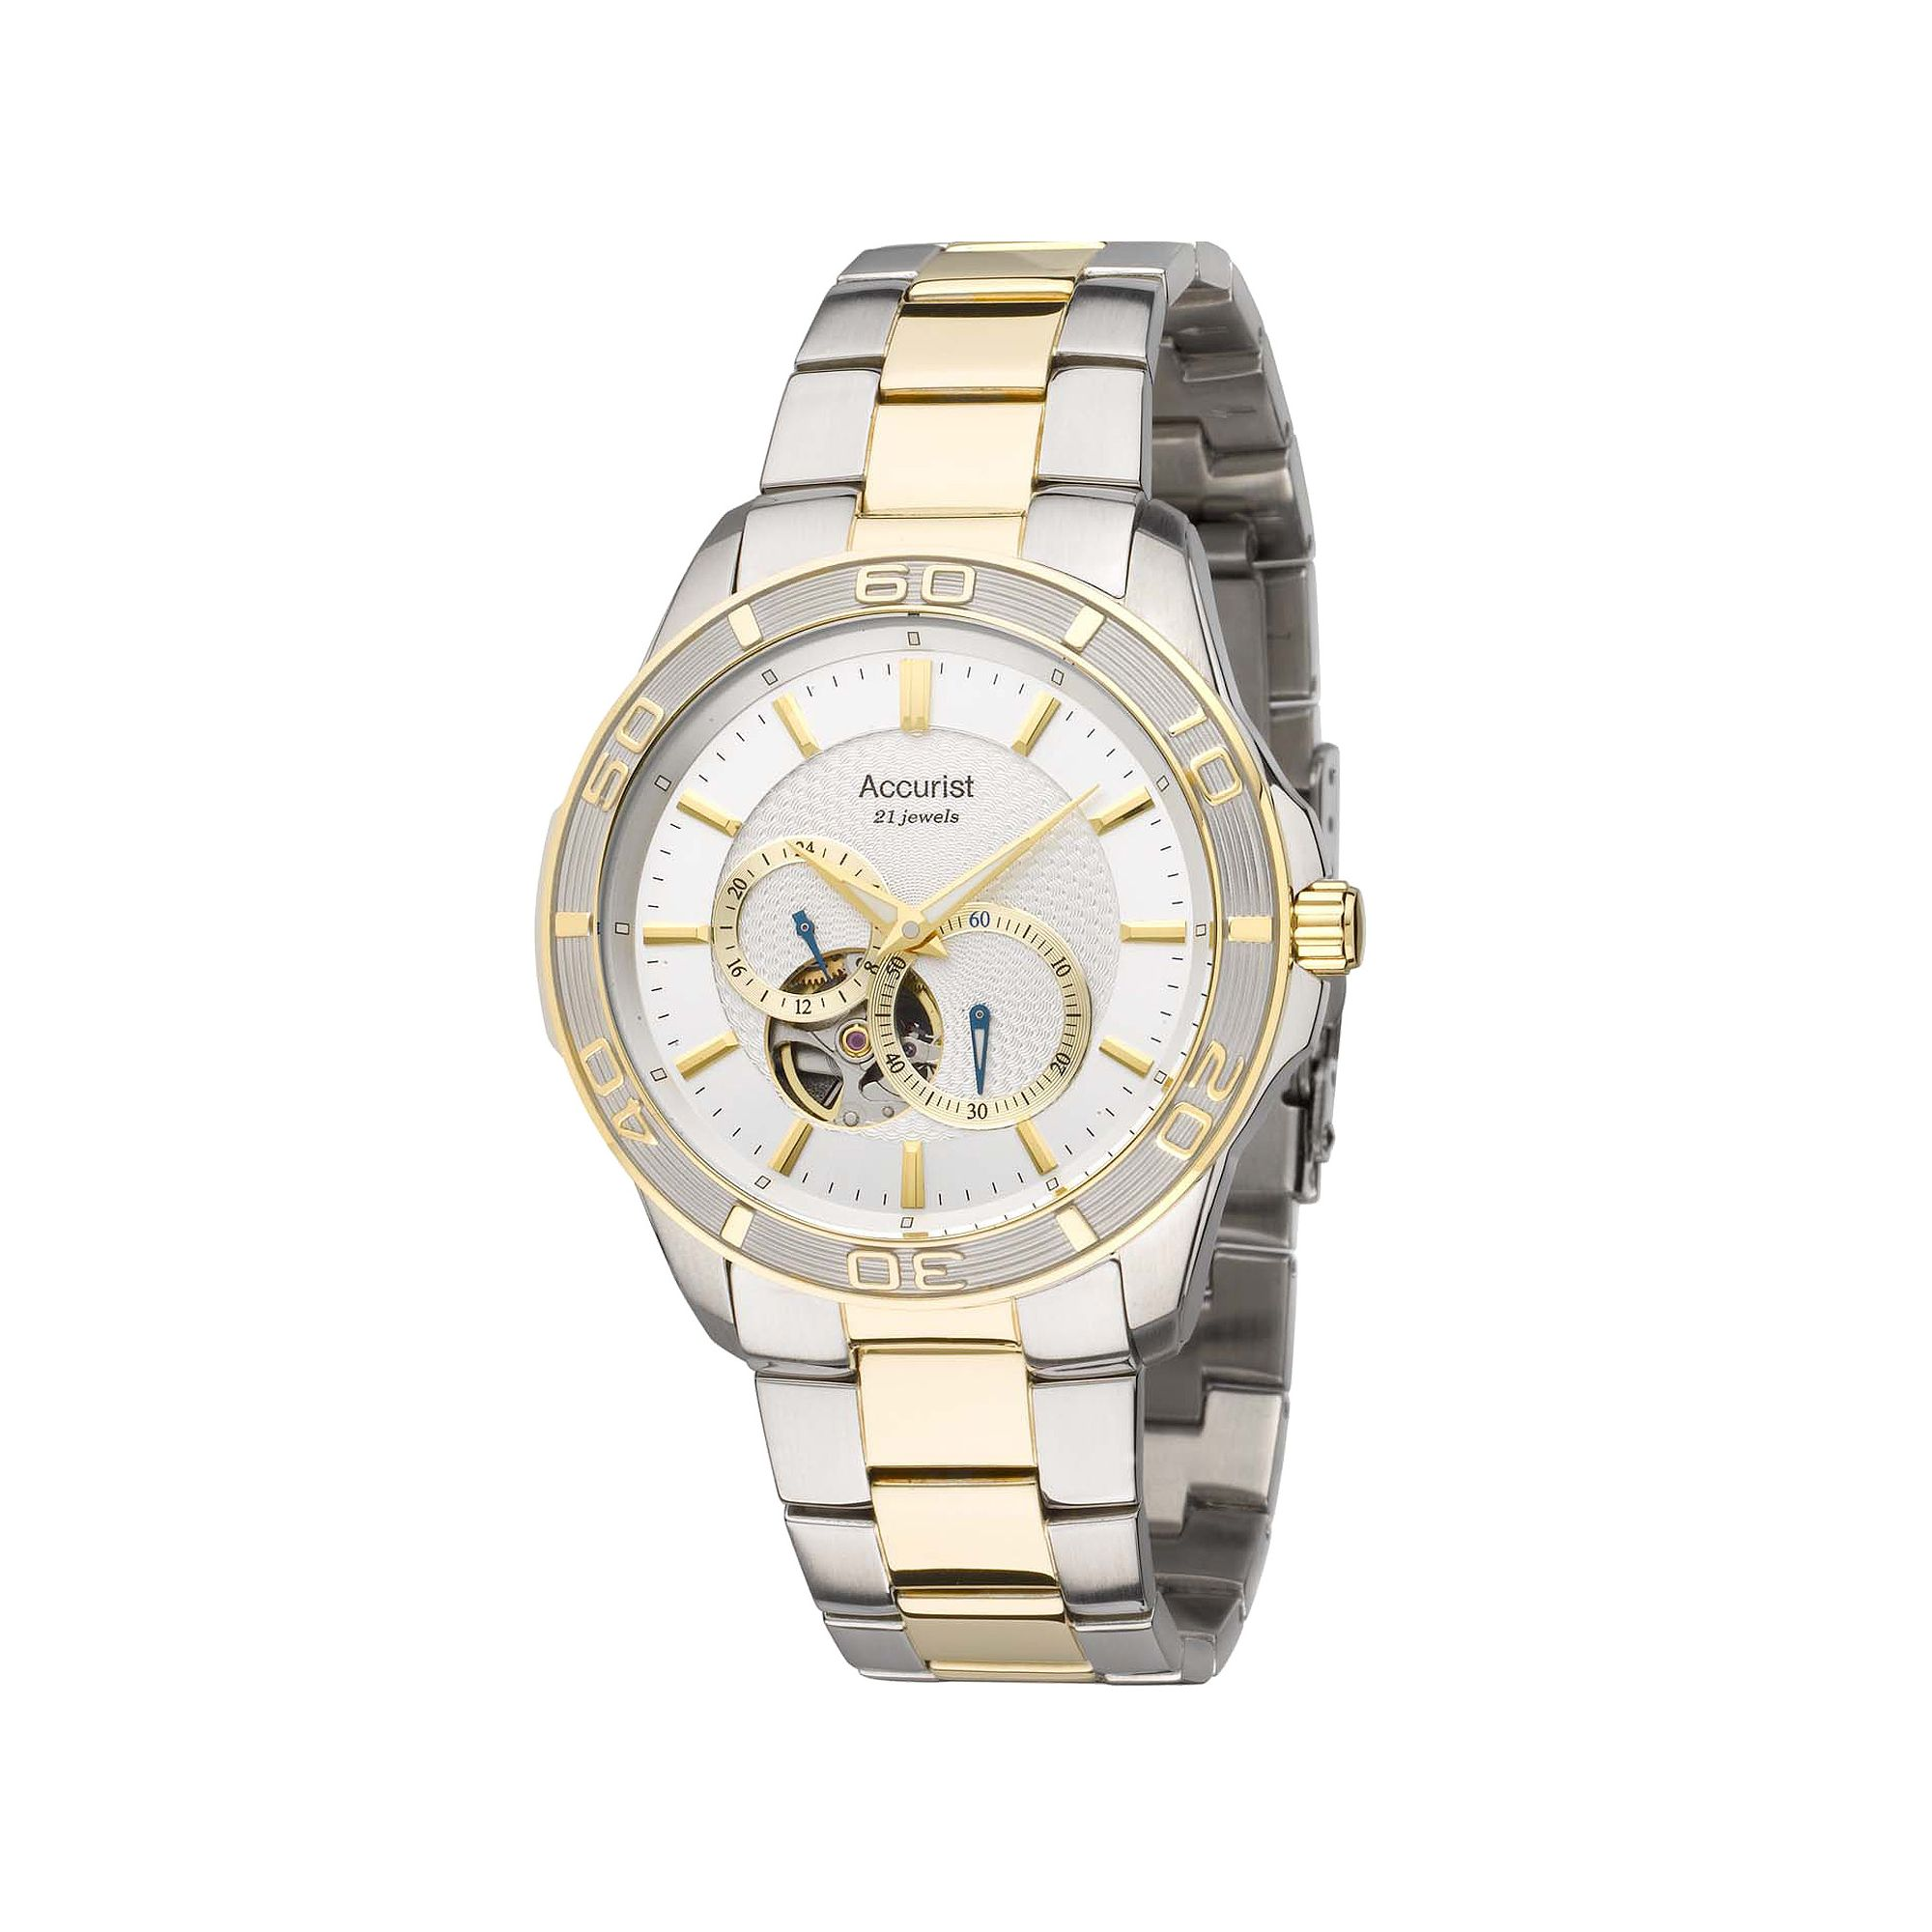 Accurist Gents Automatic 2 Tone Bracelet Watch MB911S at Tesco Direct